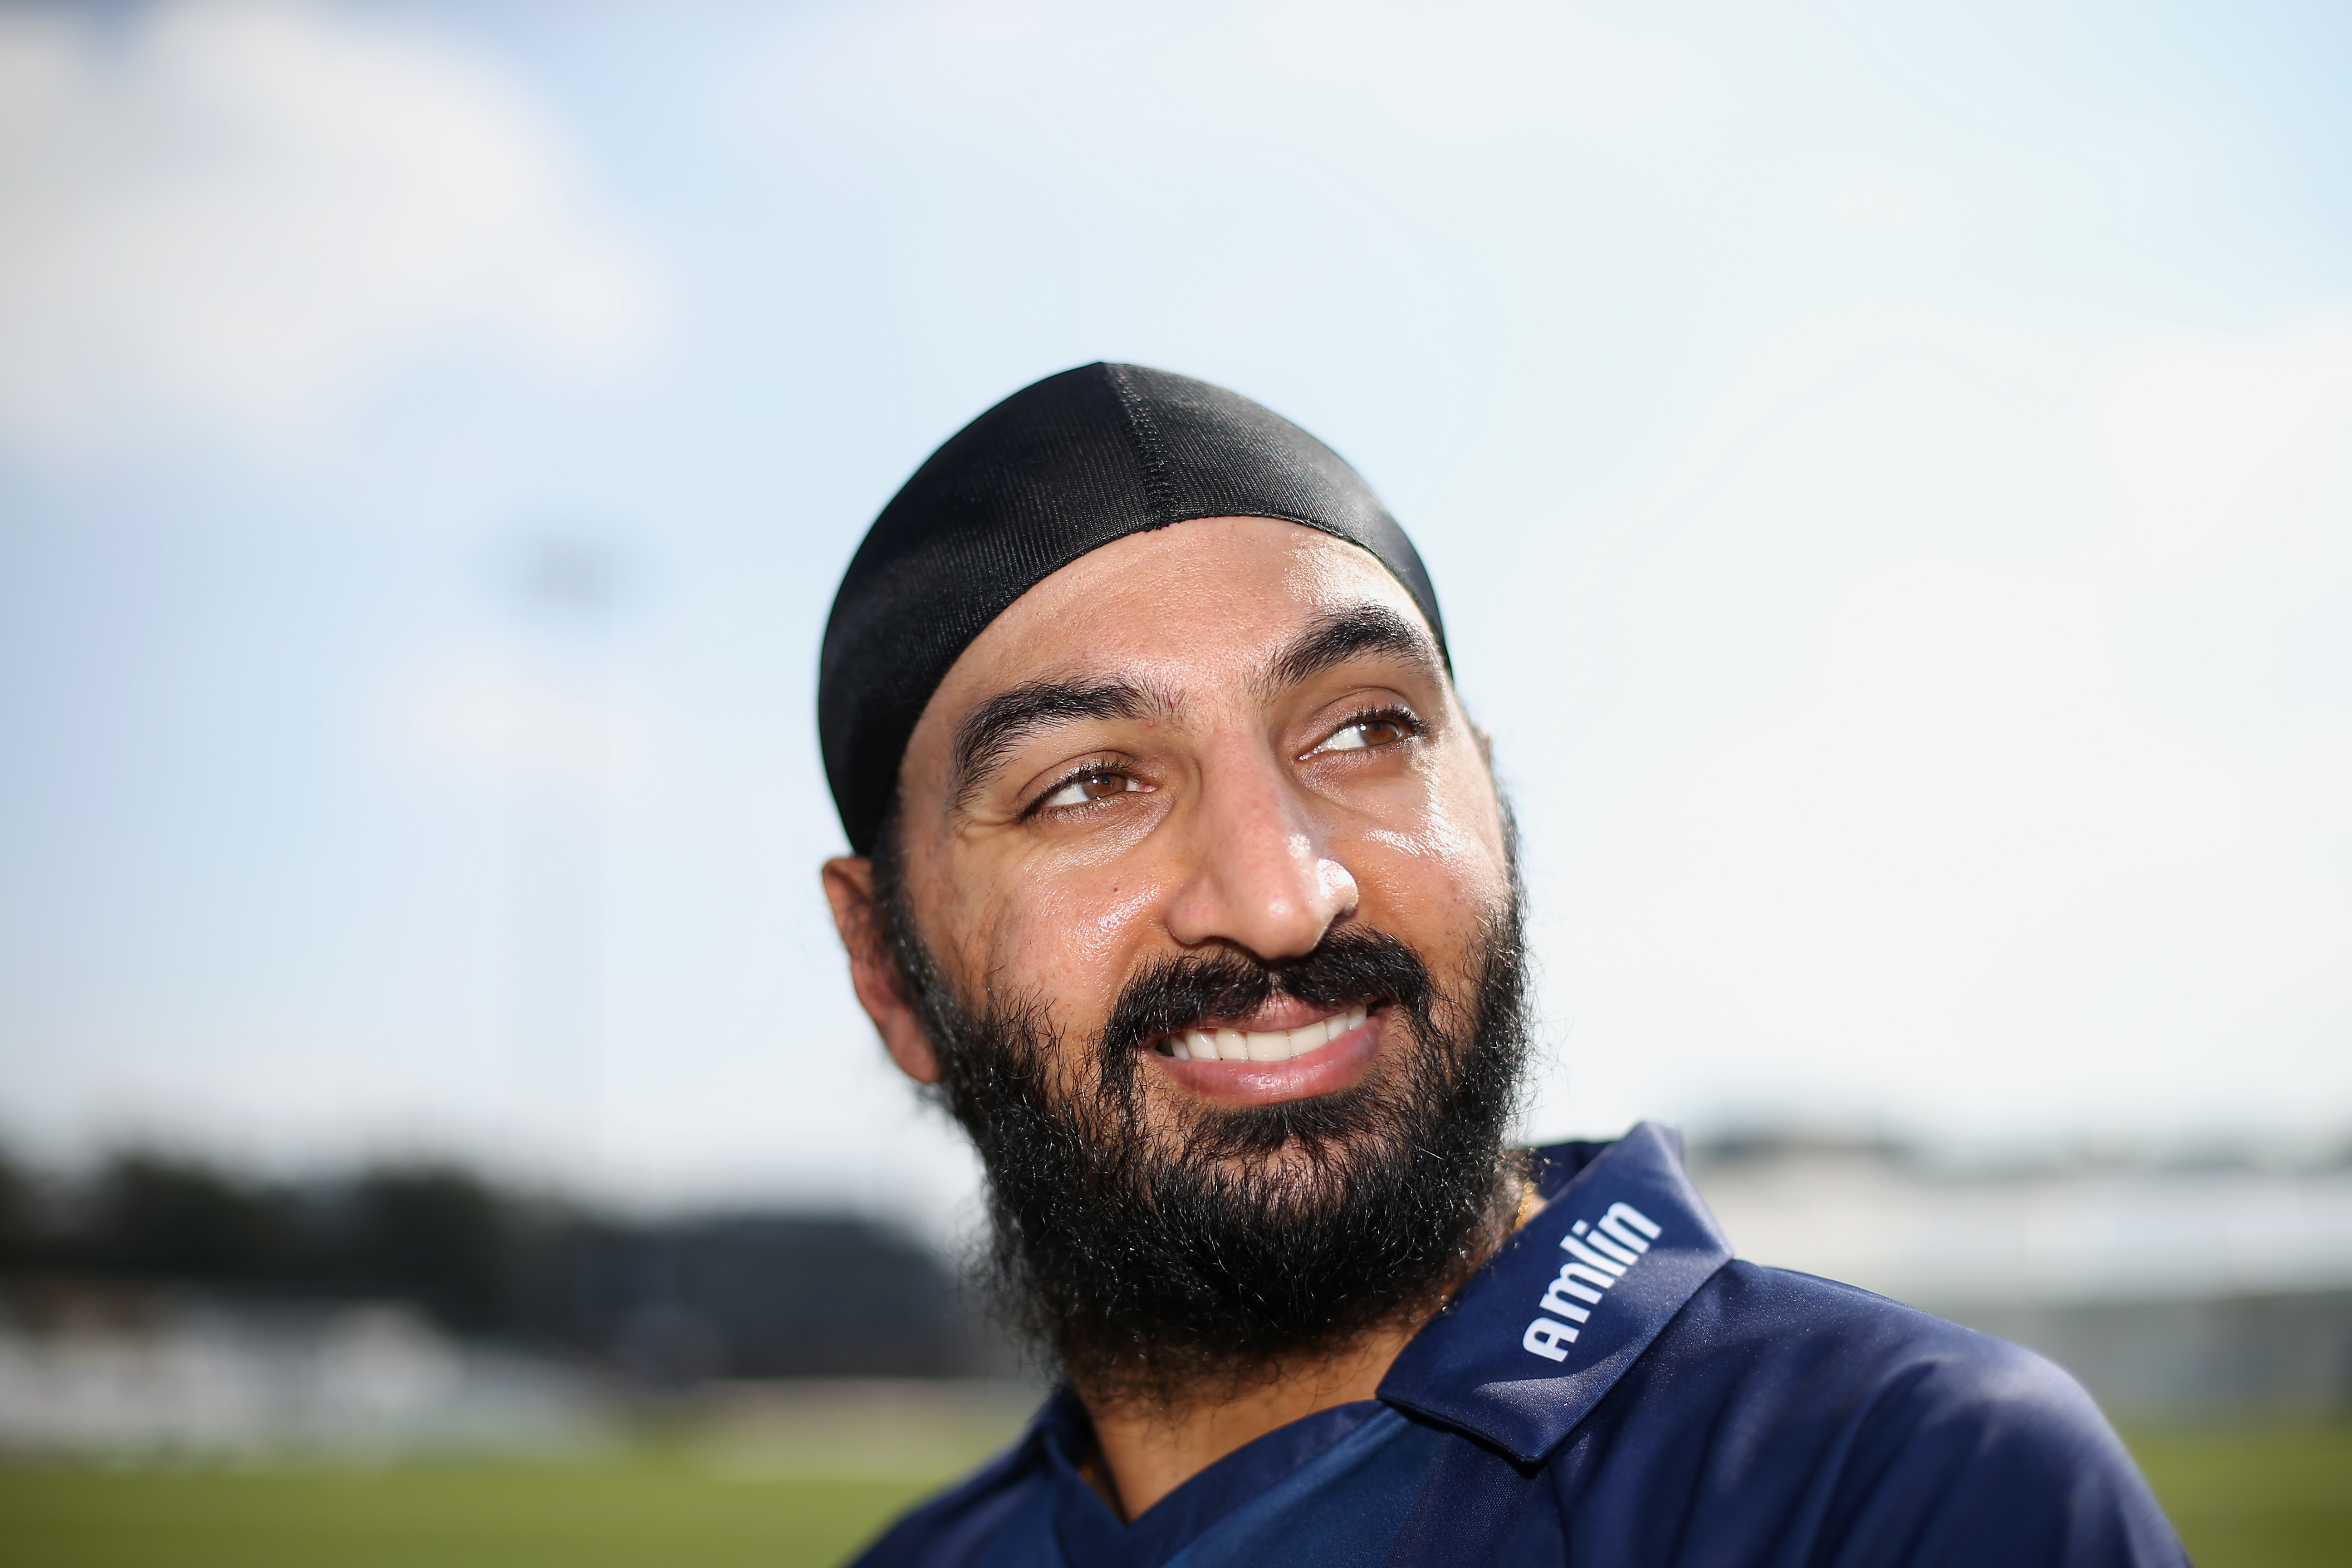 Monty Panesar (Photo by Stephen Pond/Getty Images)